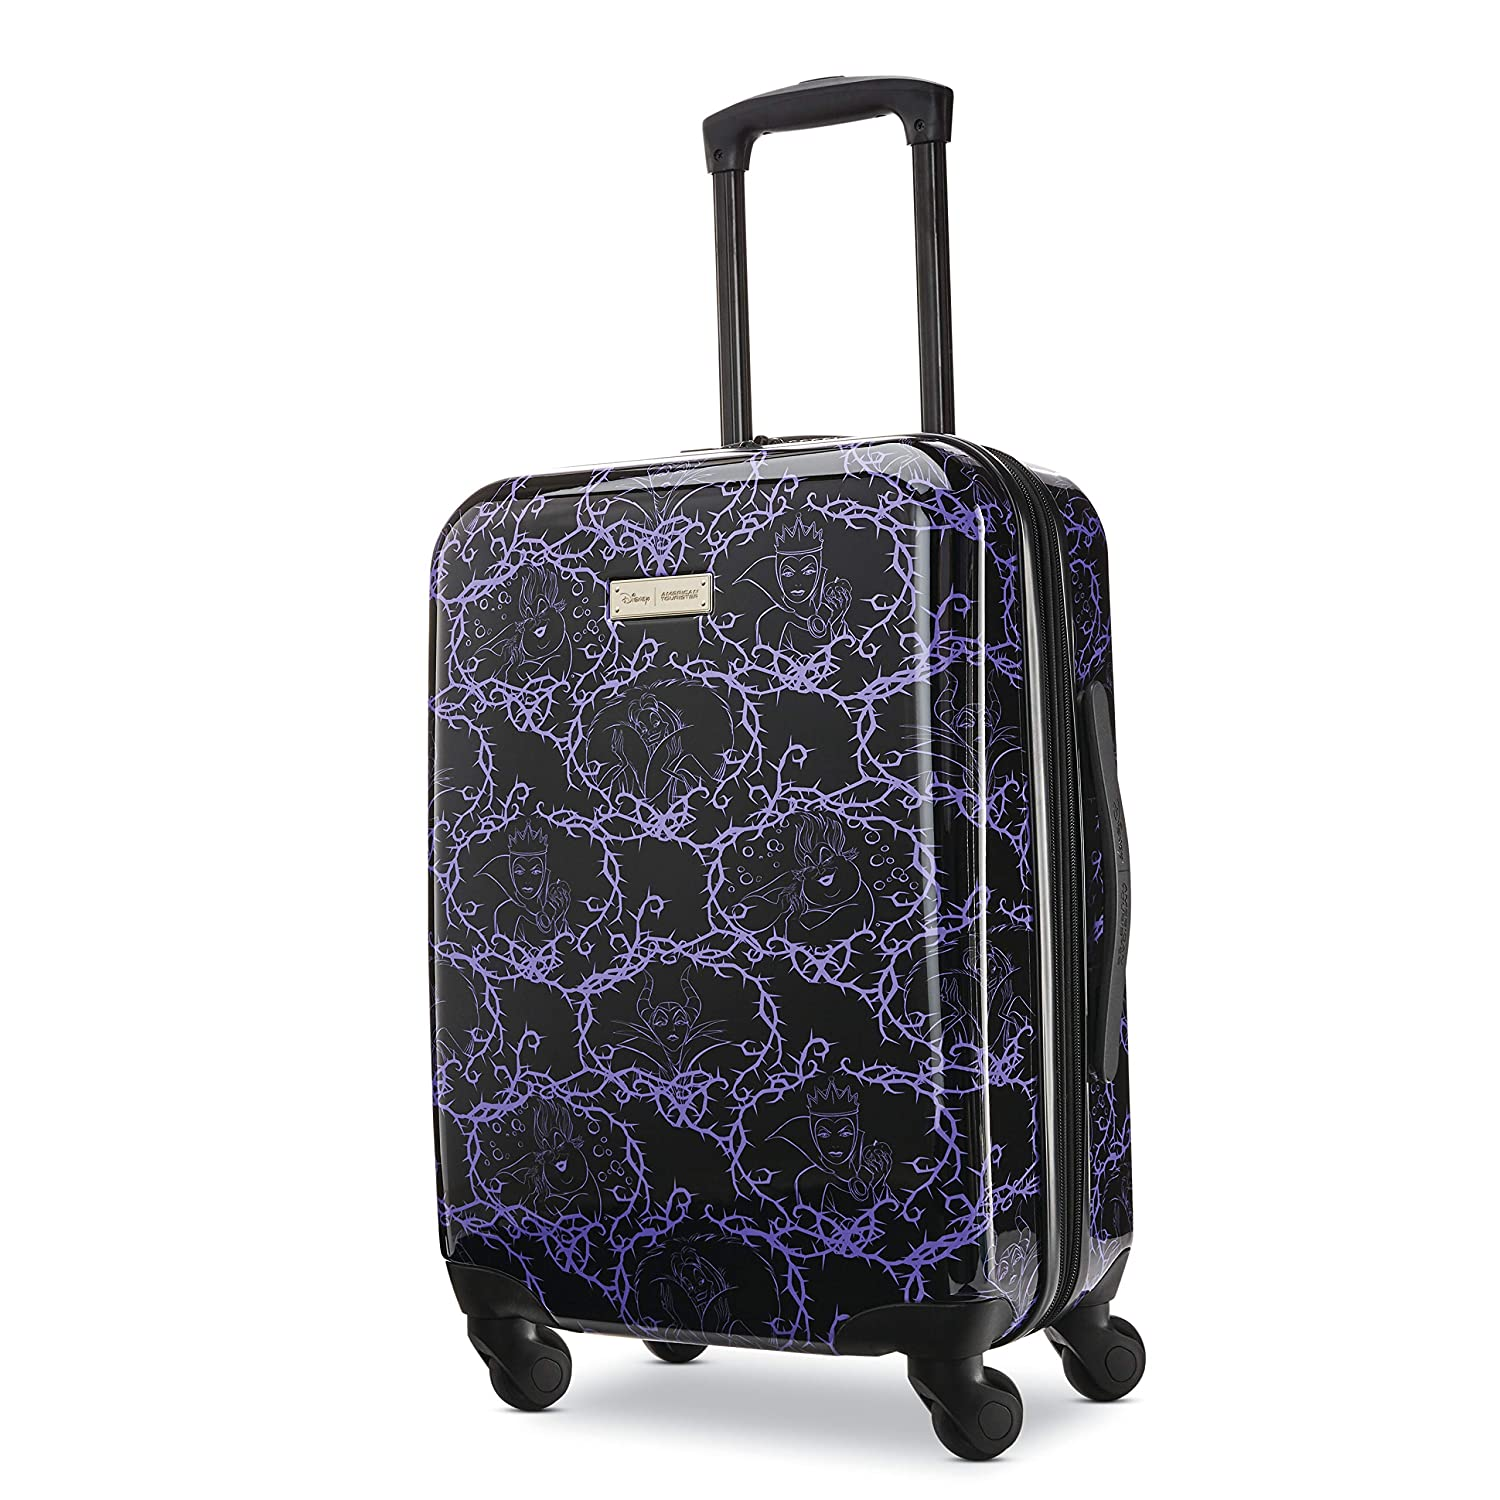 Image of American Tourister Carry-on, Villains Luggage